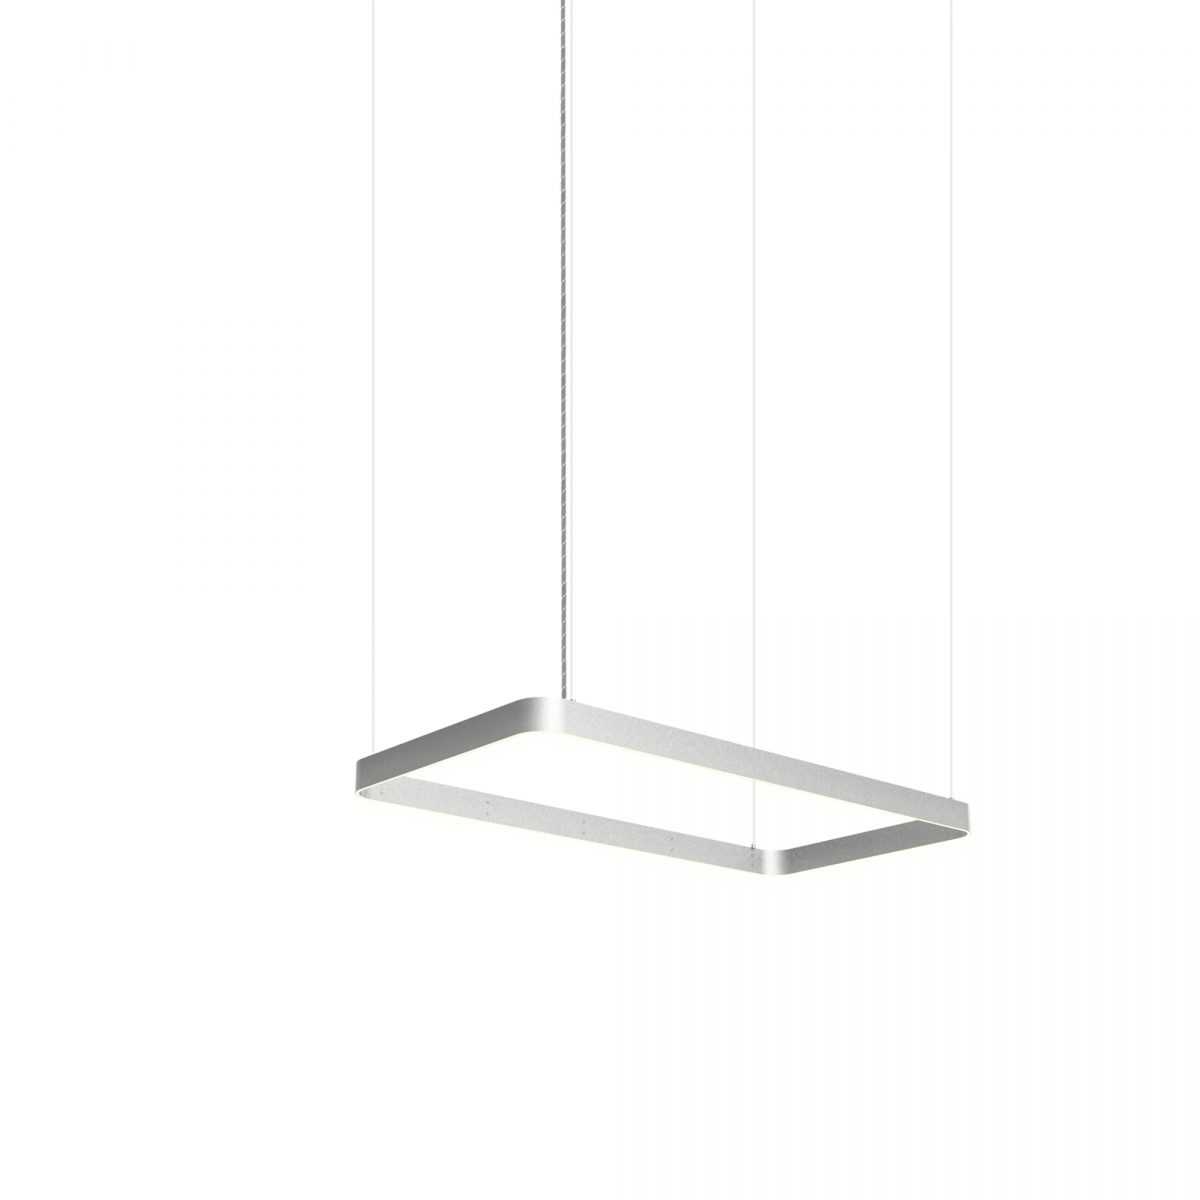 JSPR Eden 50×100 Silver Rectangle